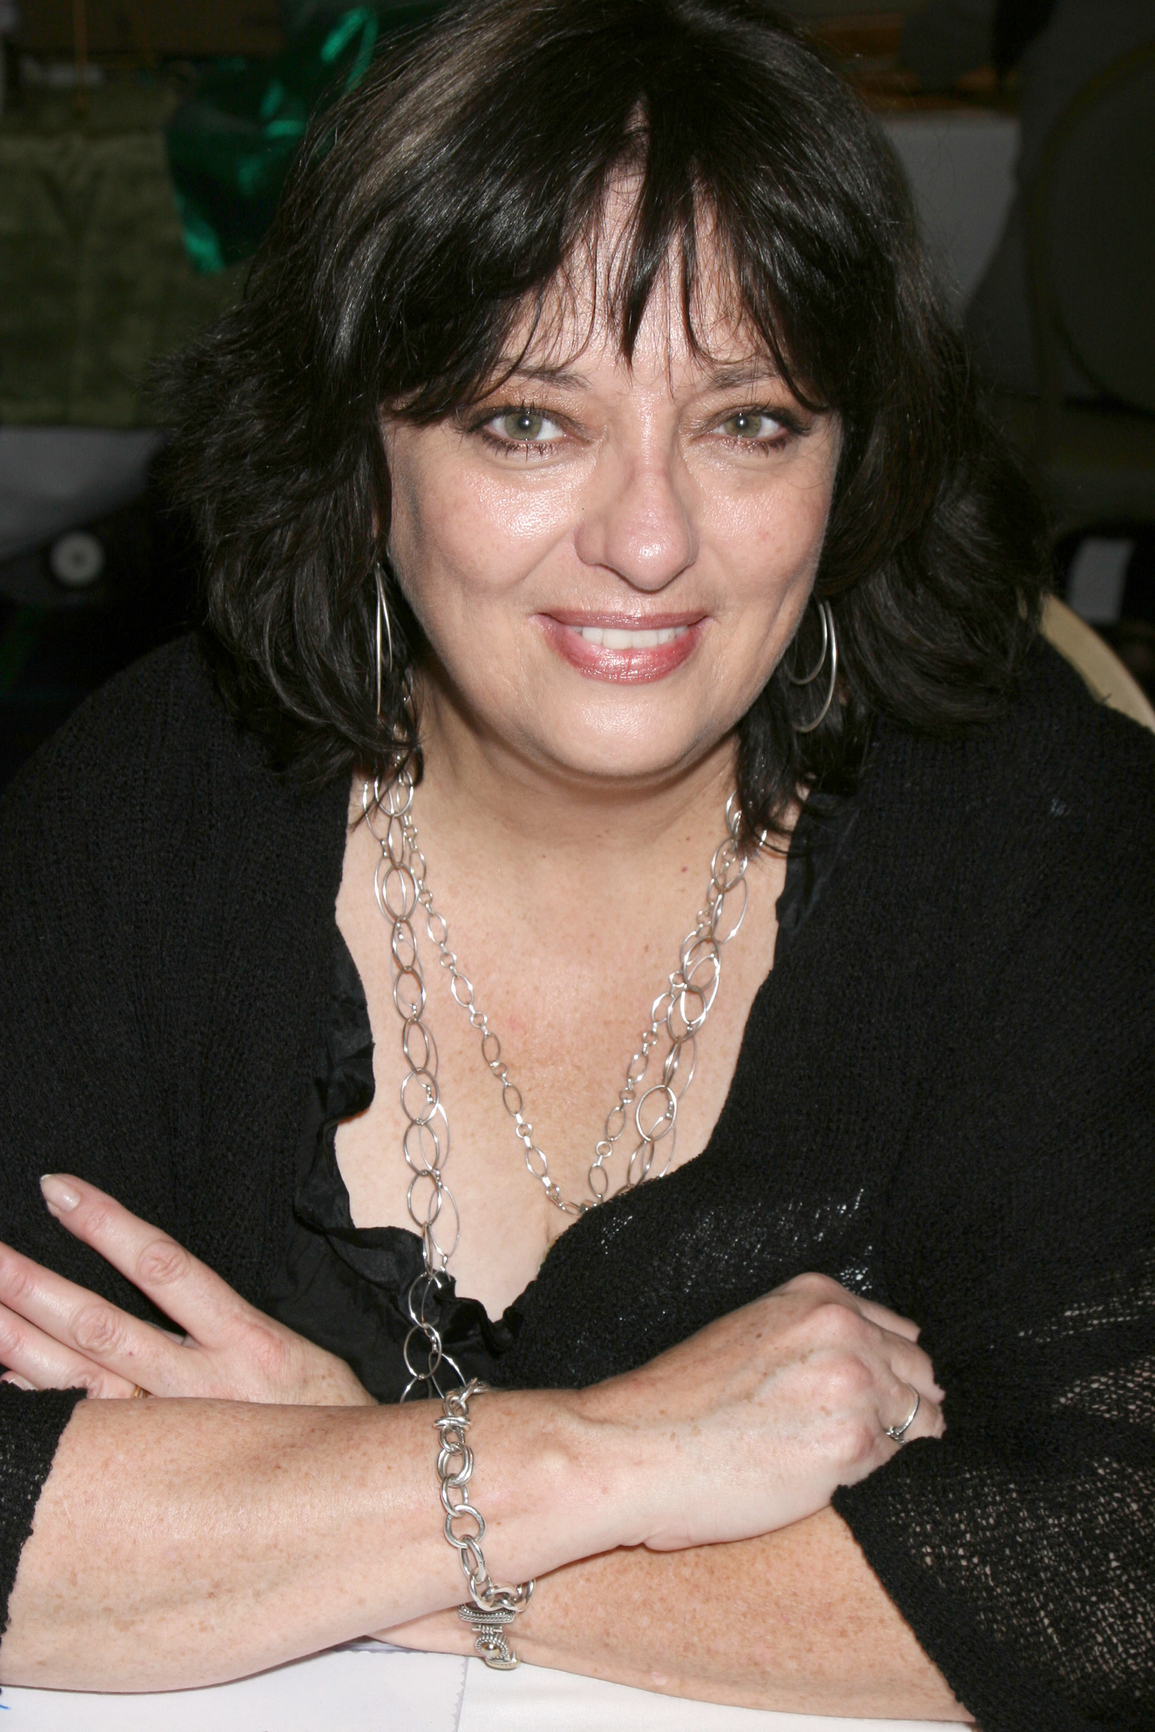 Asbury Park Press Nj Jersey Shore New Jersey News Angela Cartwright From The Sound Of Music Talks About